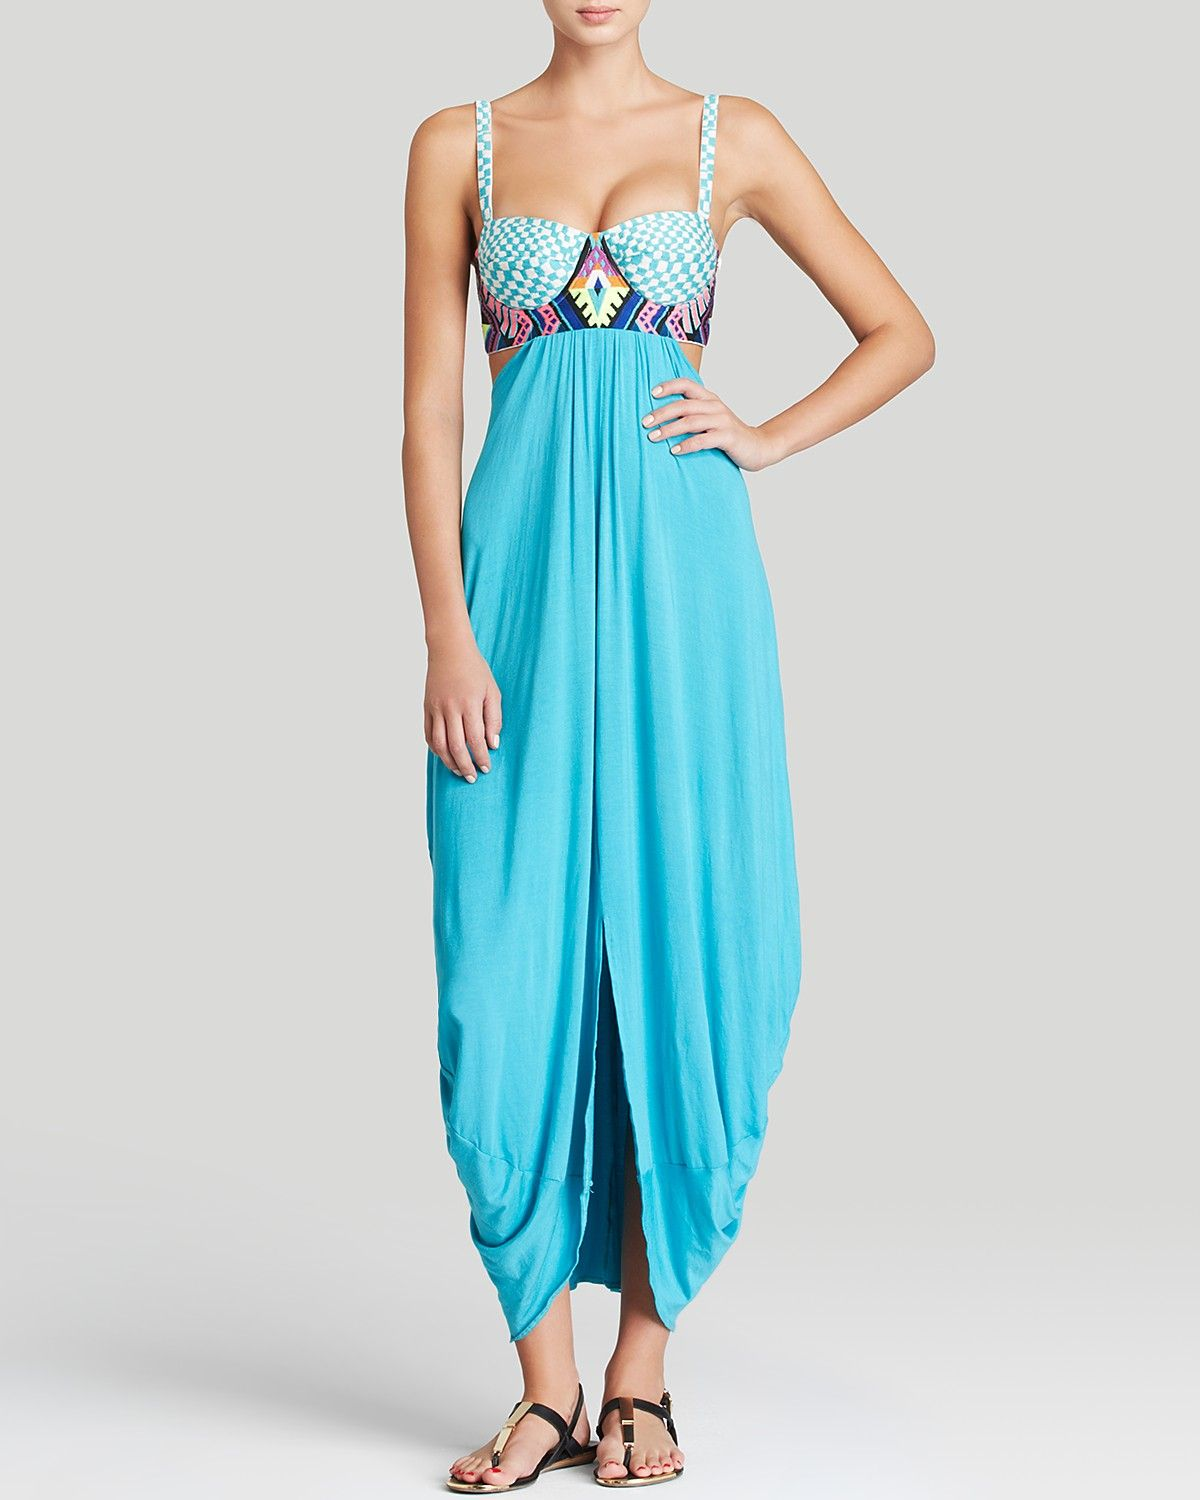 Mara Hoffman Checkers Embroidered Maxi Dress Swim Cover Up   Bloomingdale's